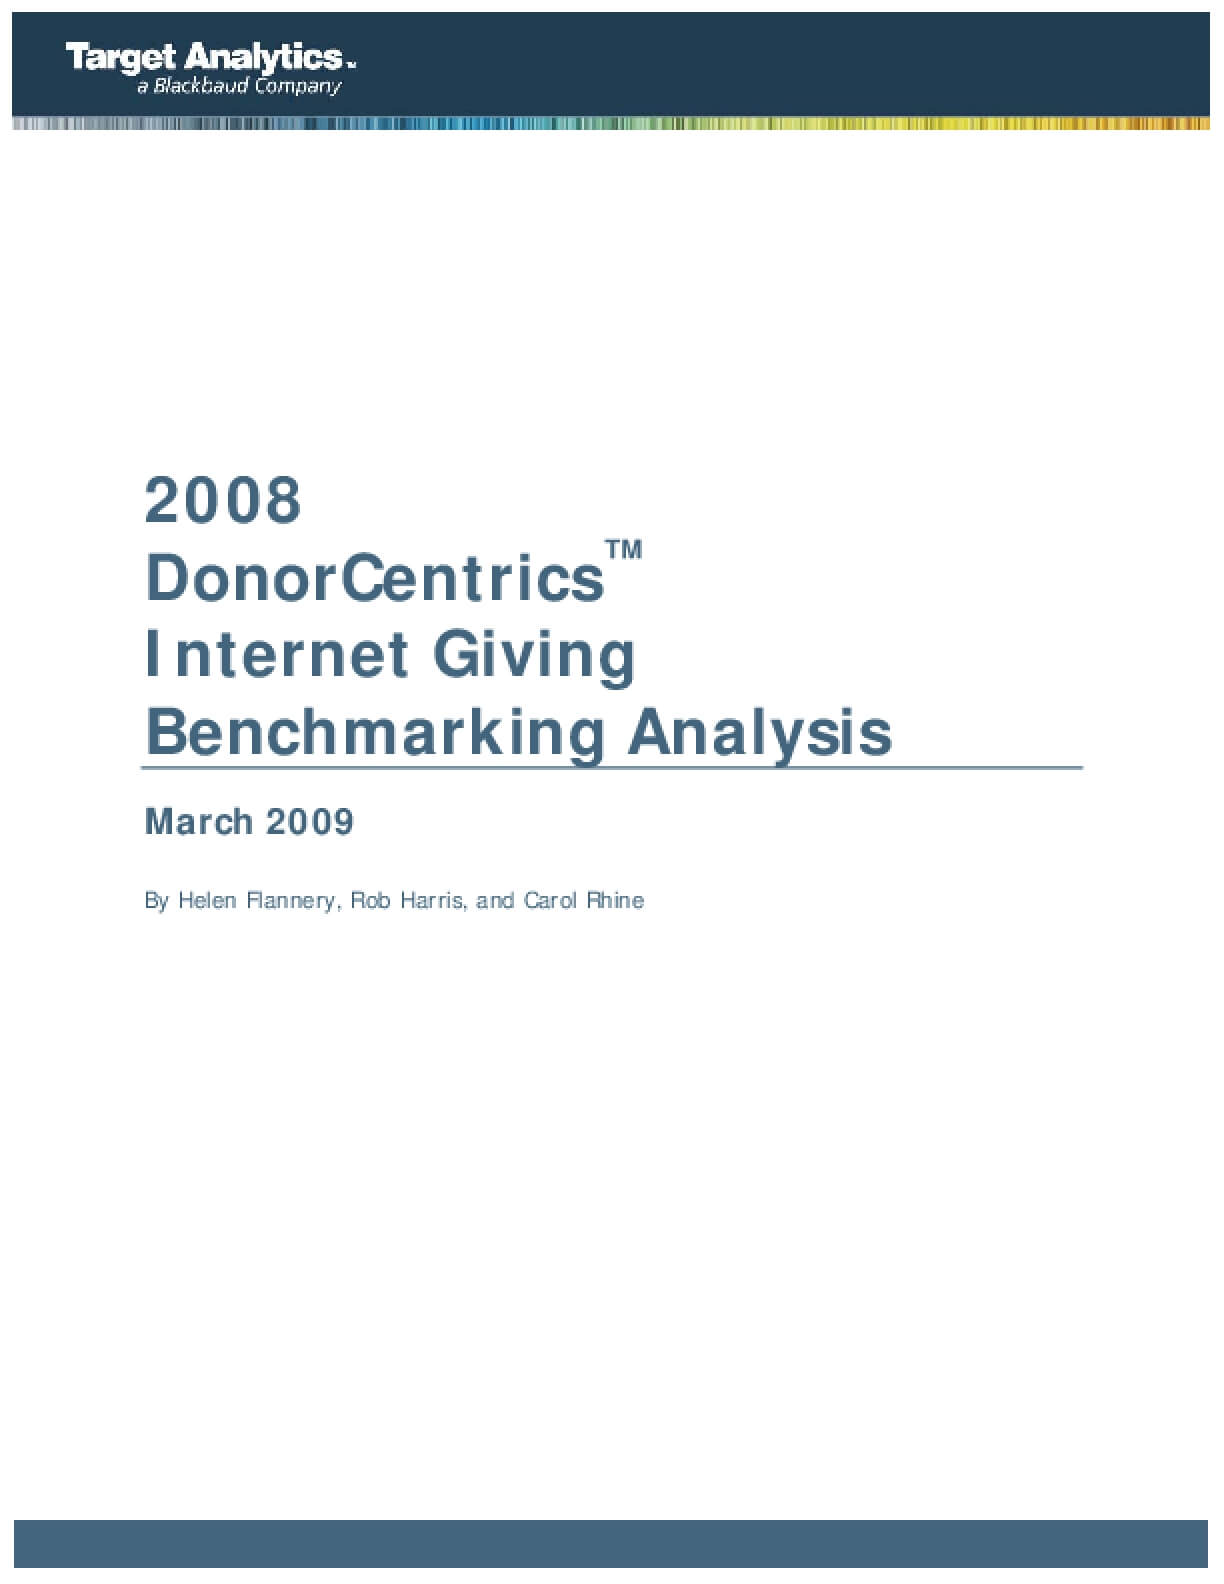 2008 DonorCentrics Internet Giving Benchmarking Analysis